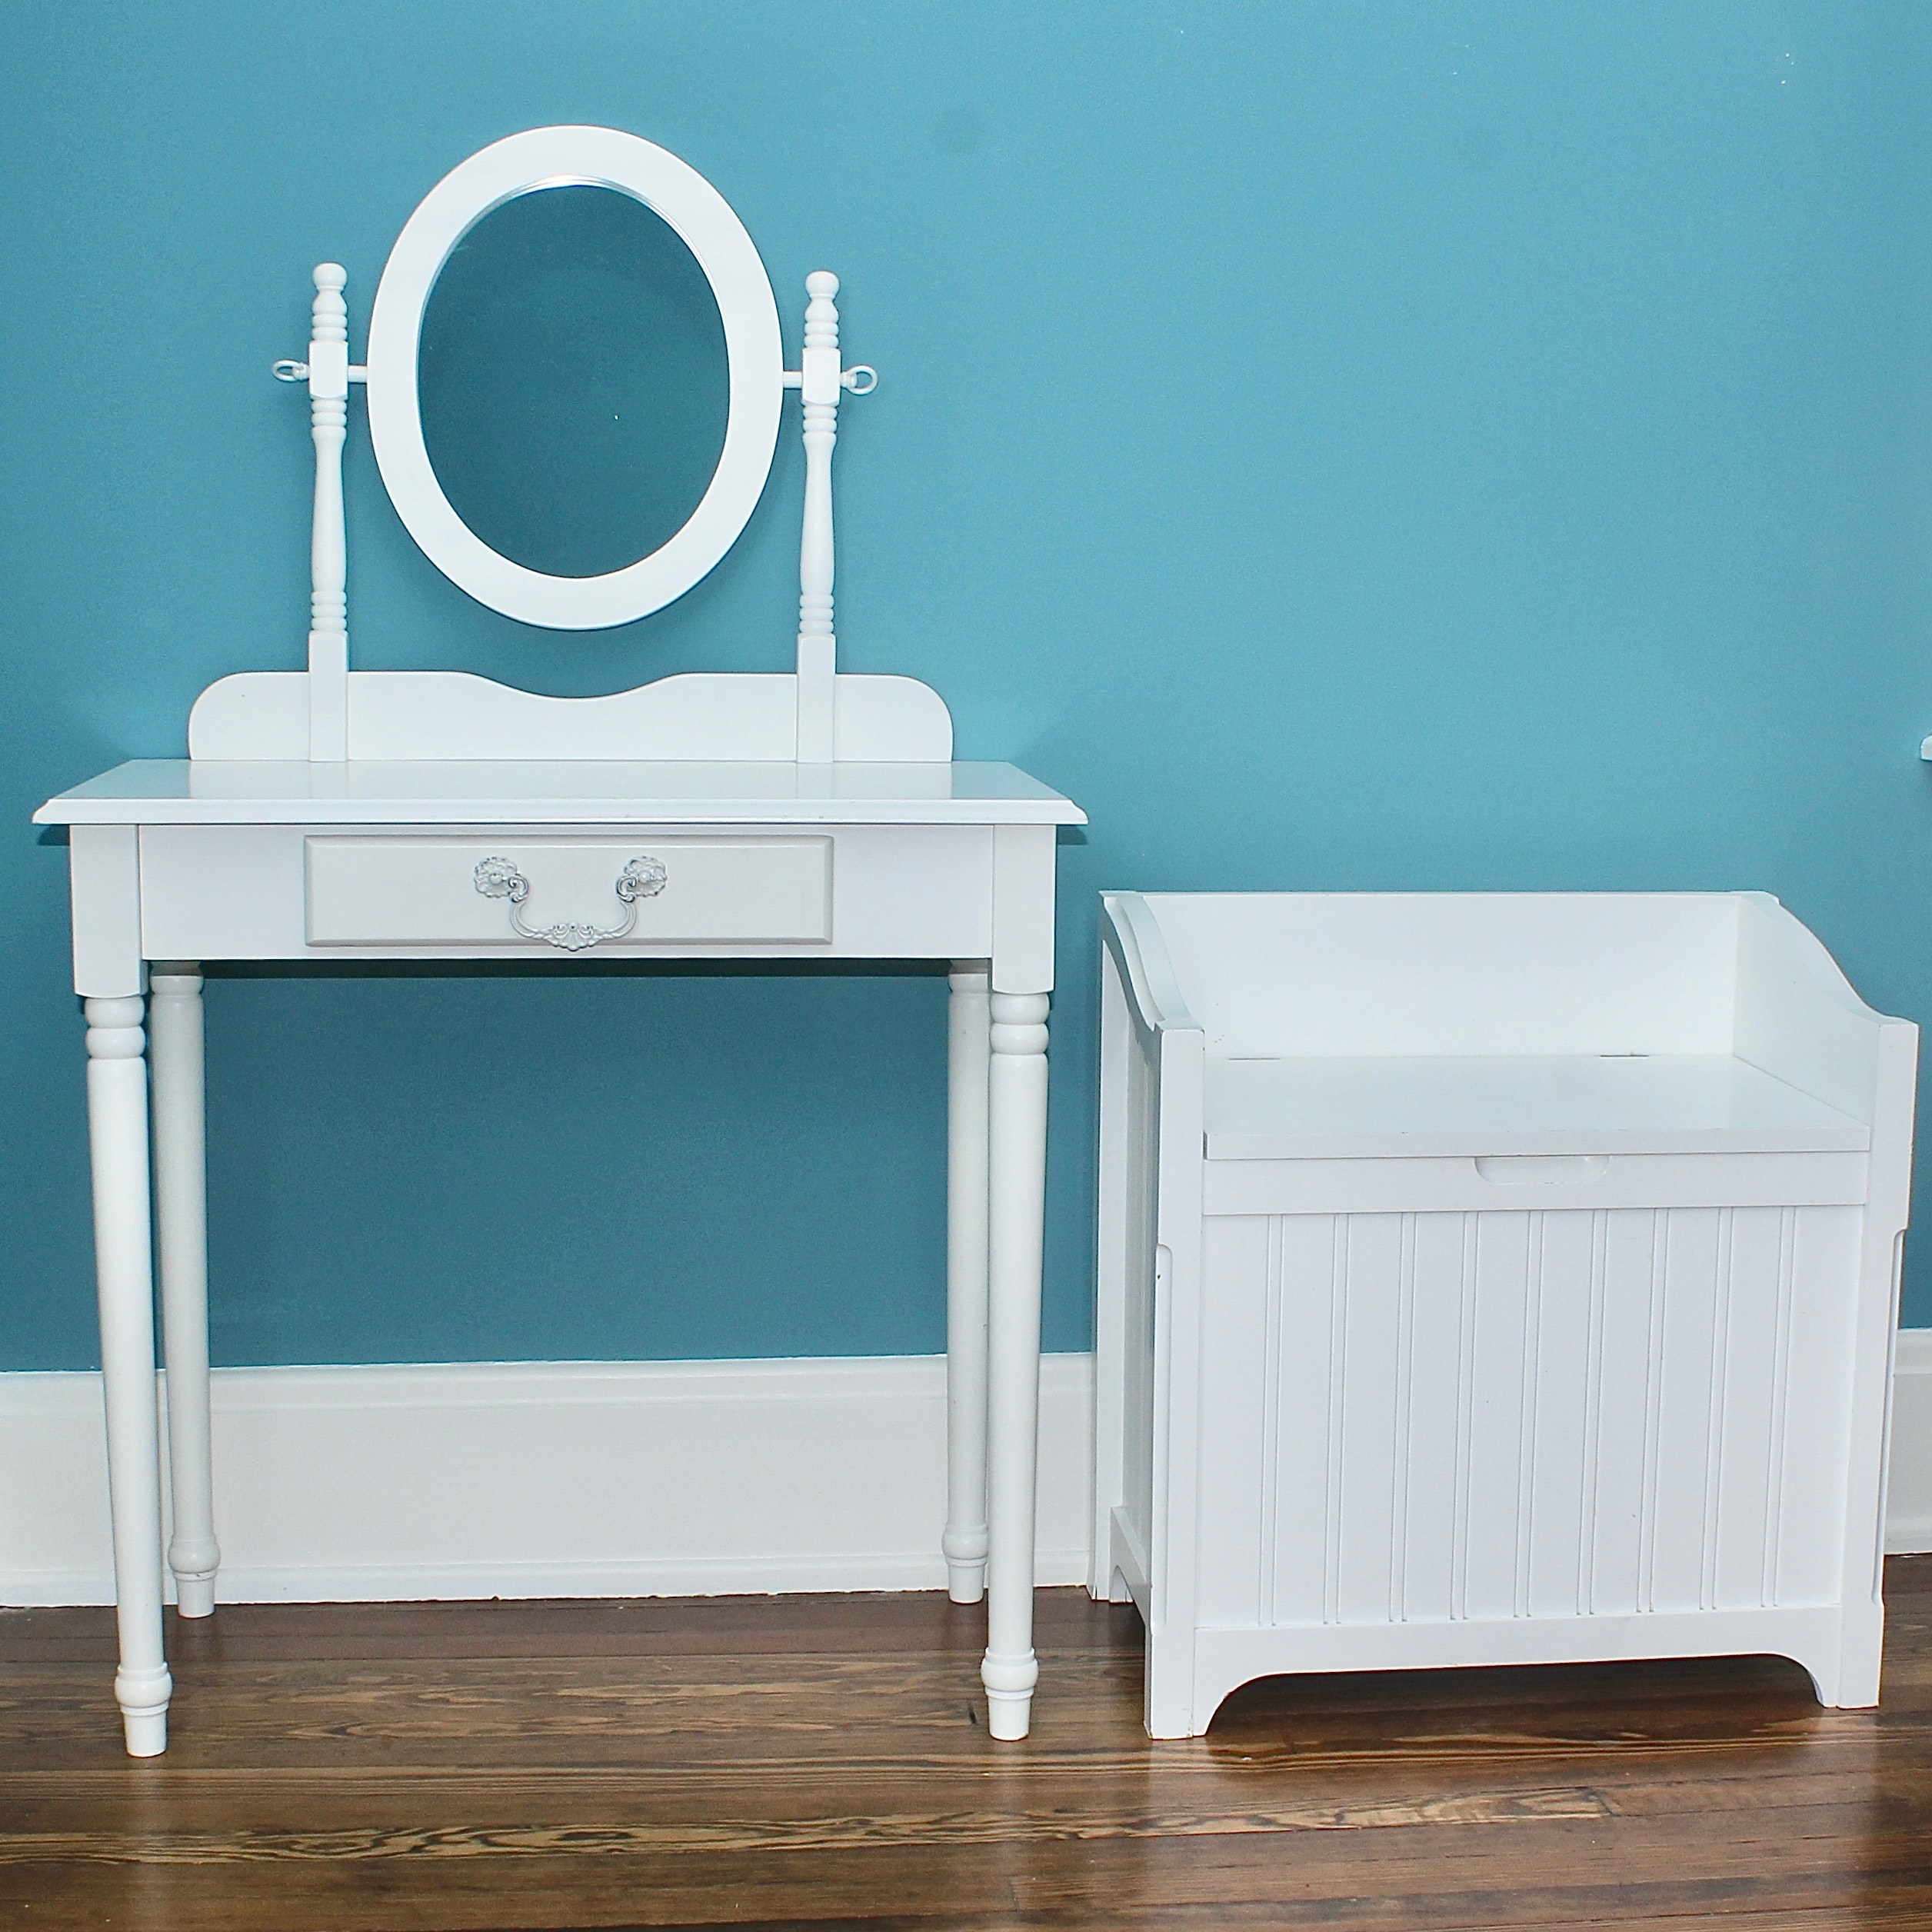 White Pottery Barn Kids Vanity and Bedroom Bench